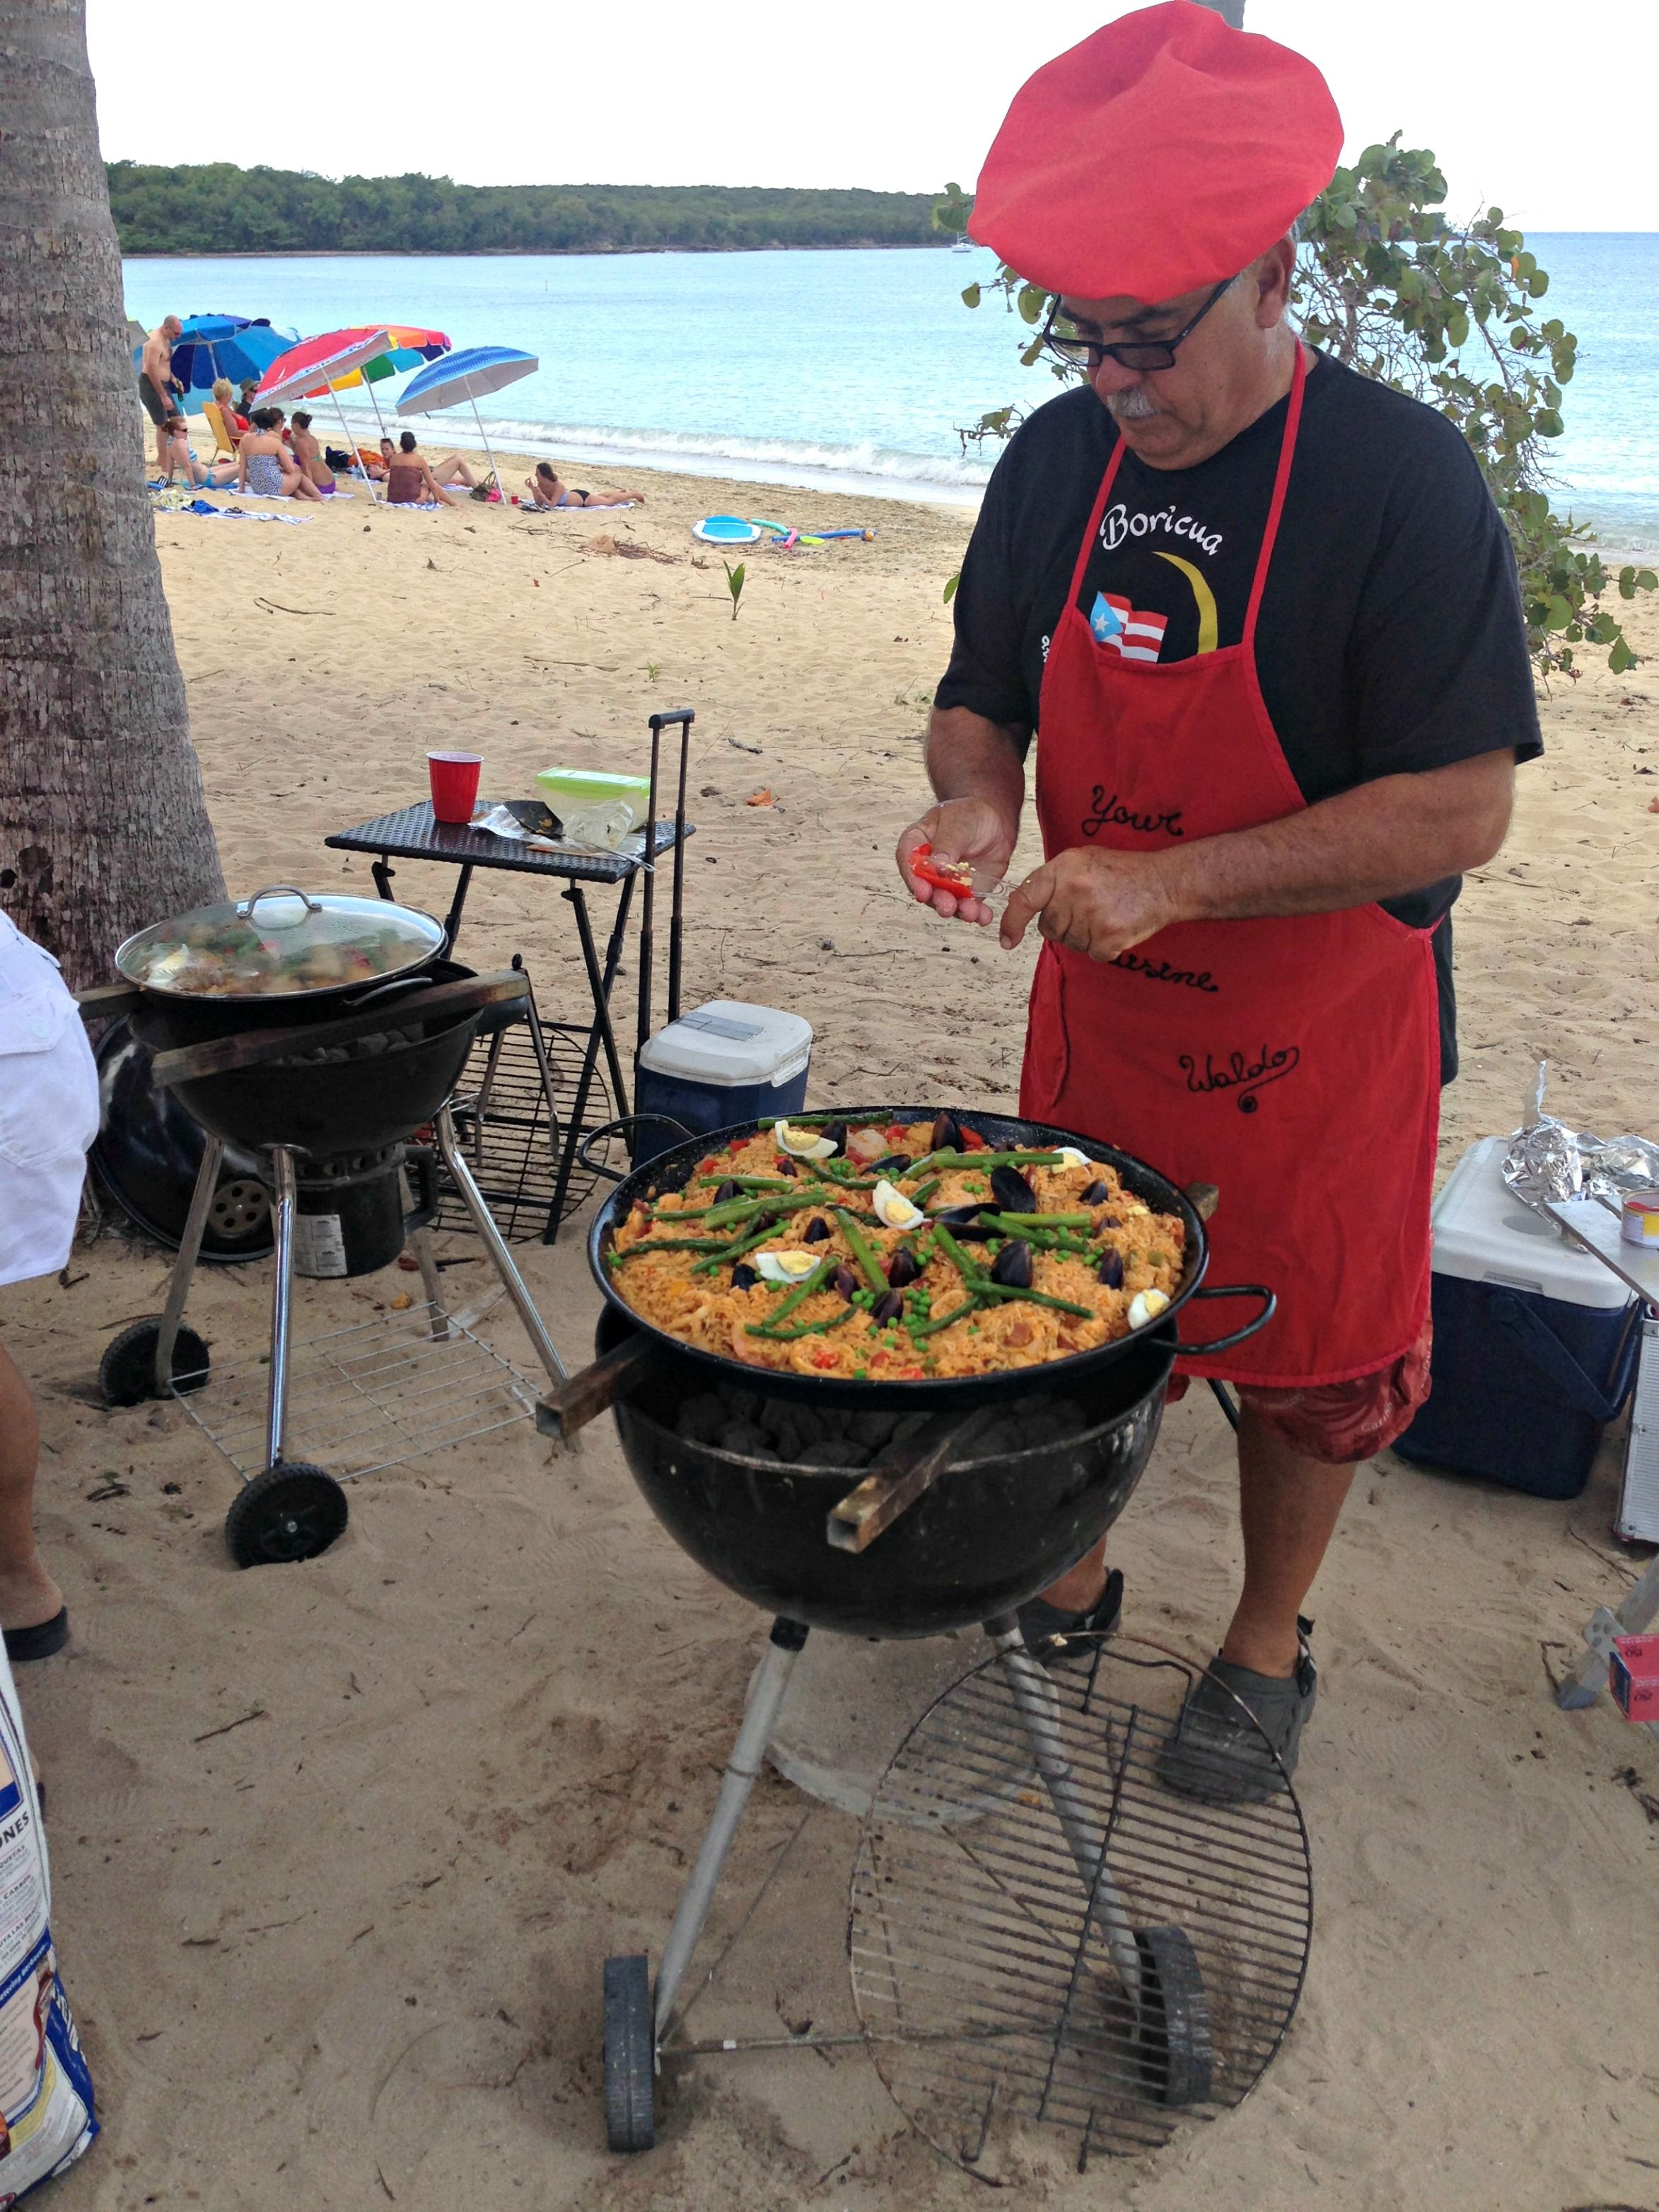 Paella over the fire is a delicious option to serve your guests at your beach party!